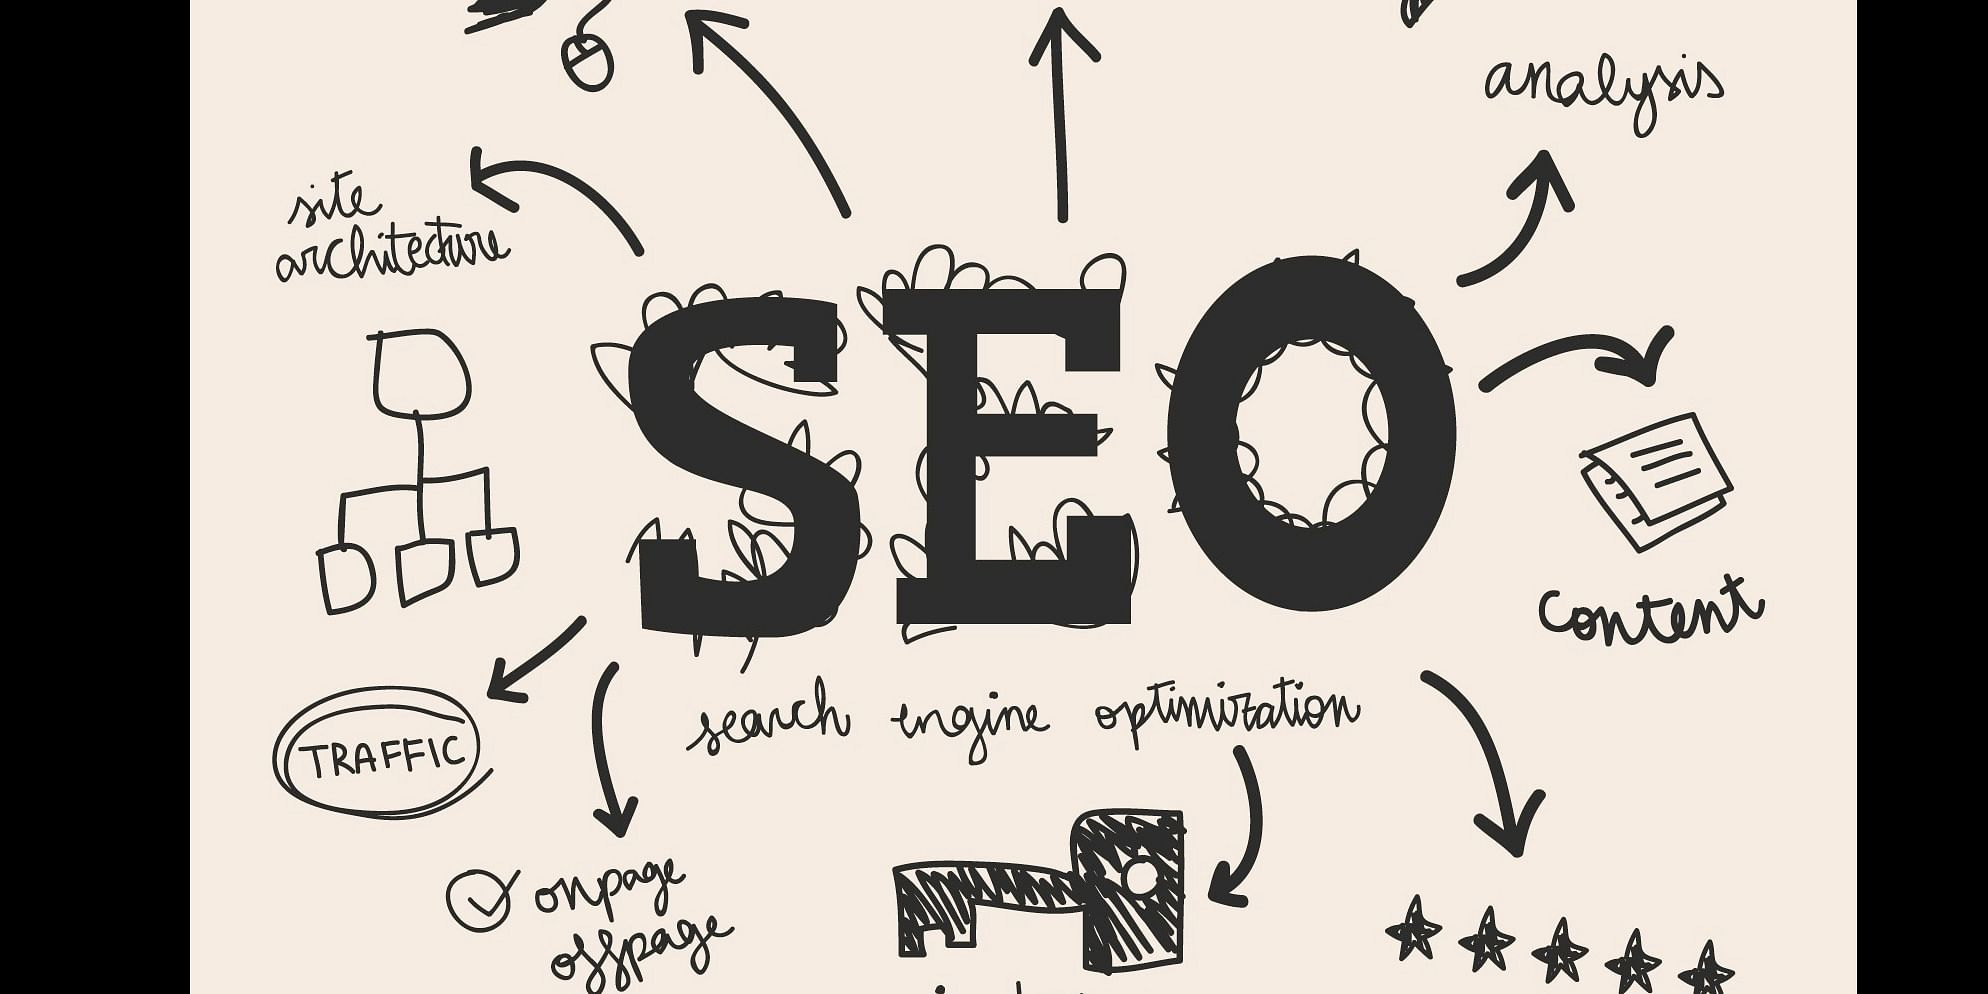 Over the years, Google has updated the Search Ranking Algorithm to provide more relevant results to users.<br>